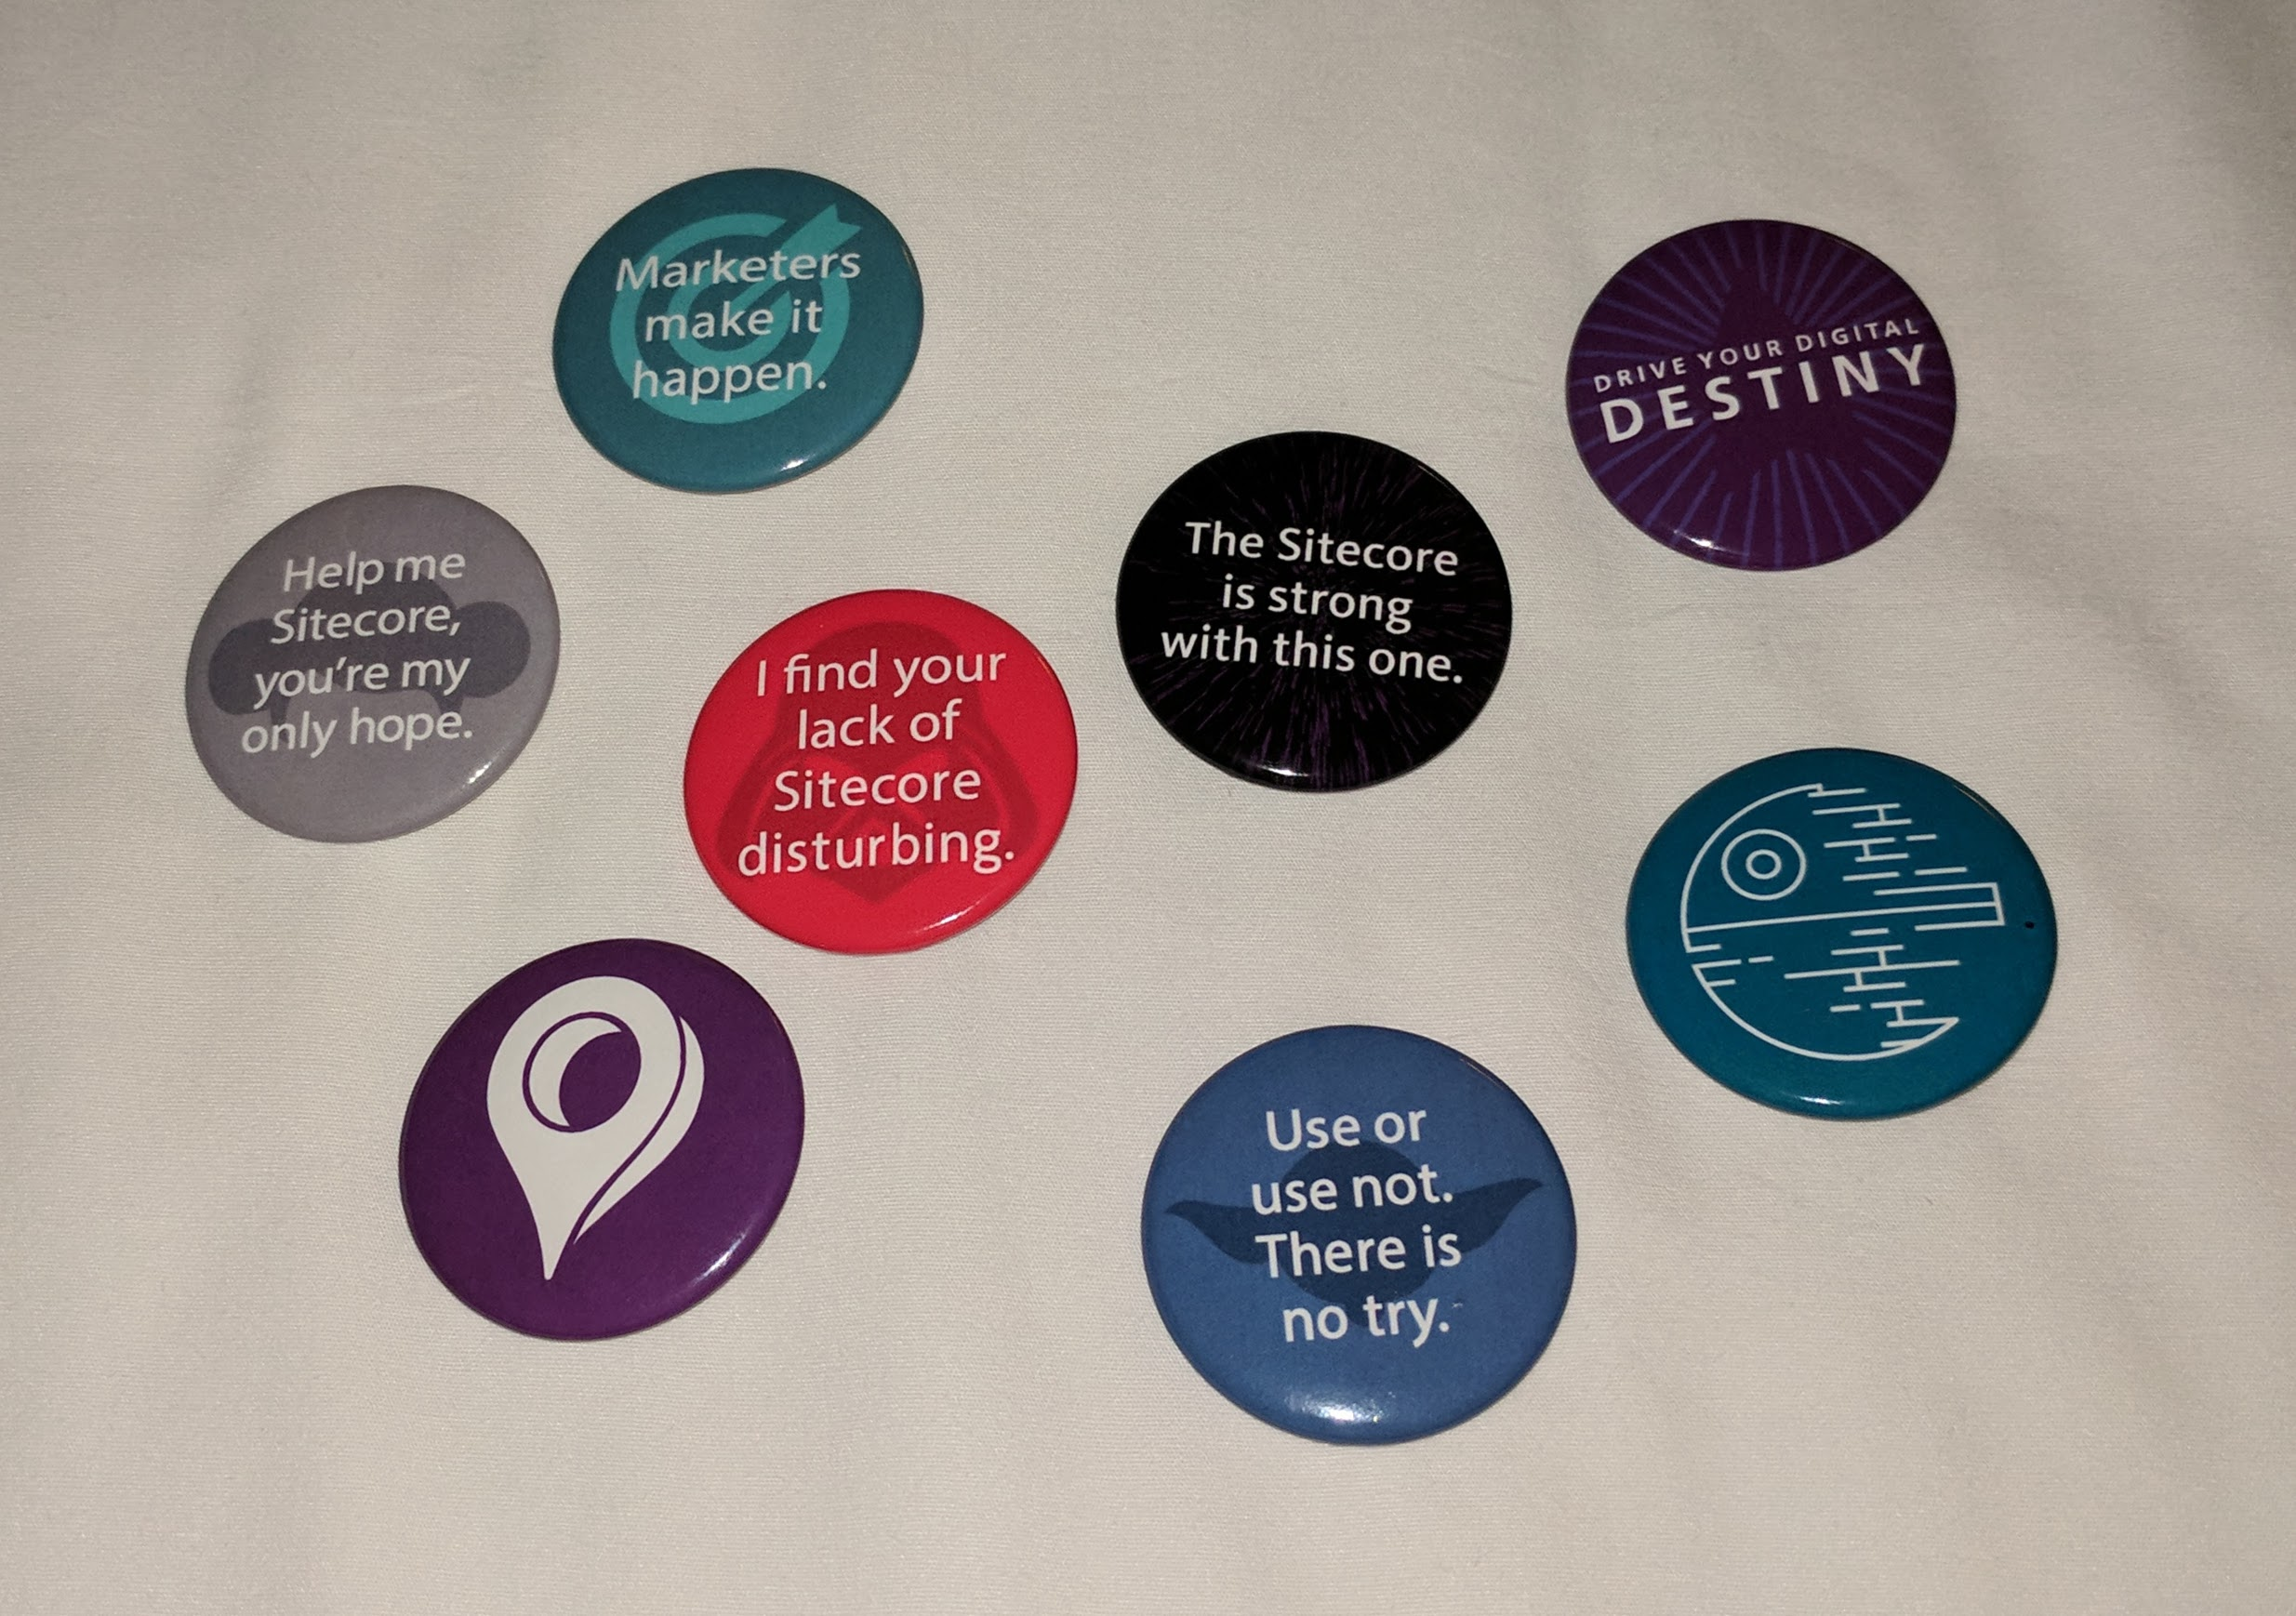 Collection of the Star-Wars-themed Sitecore buttons